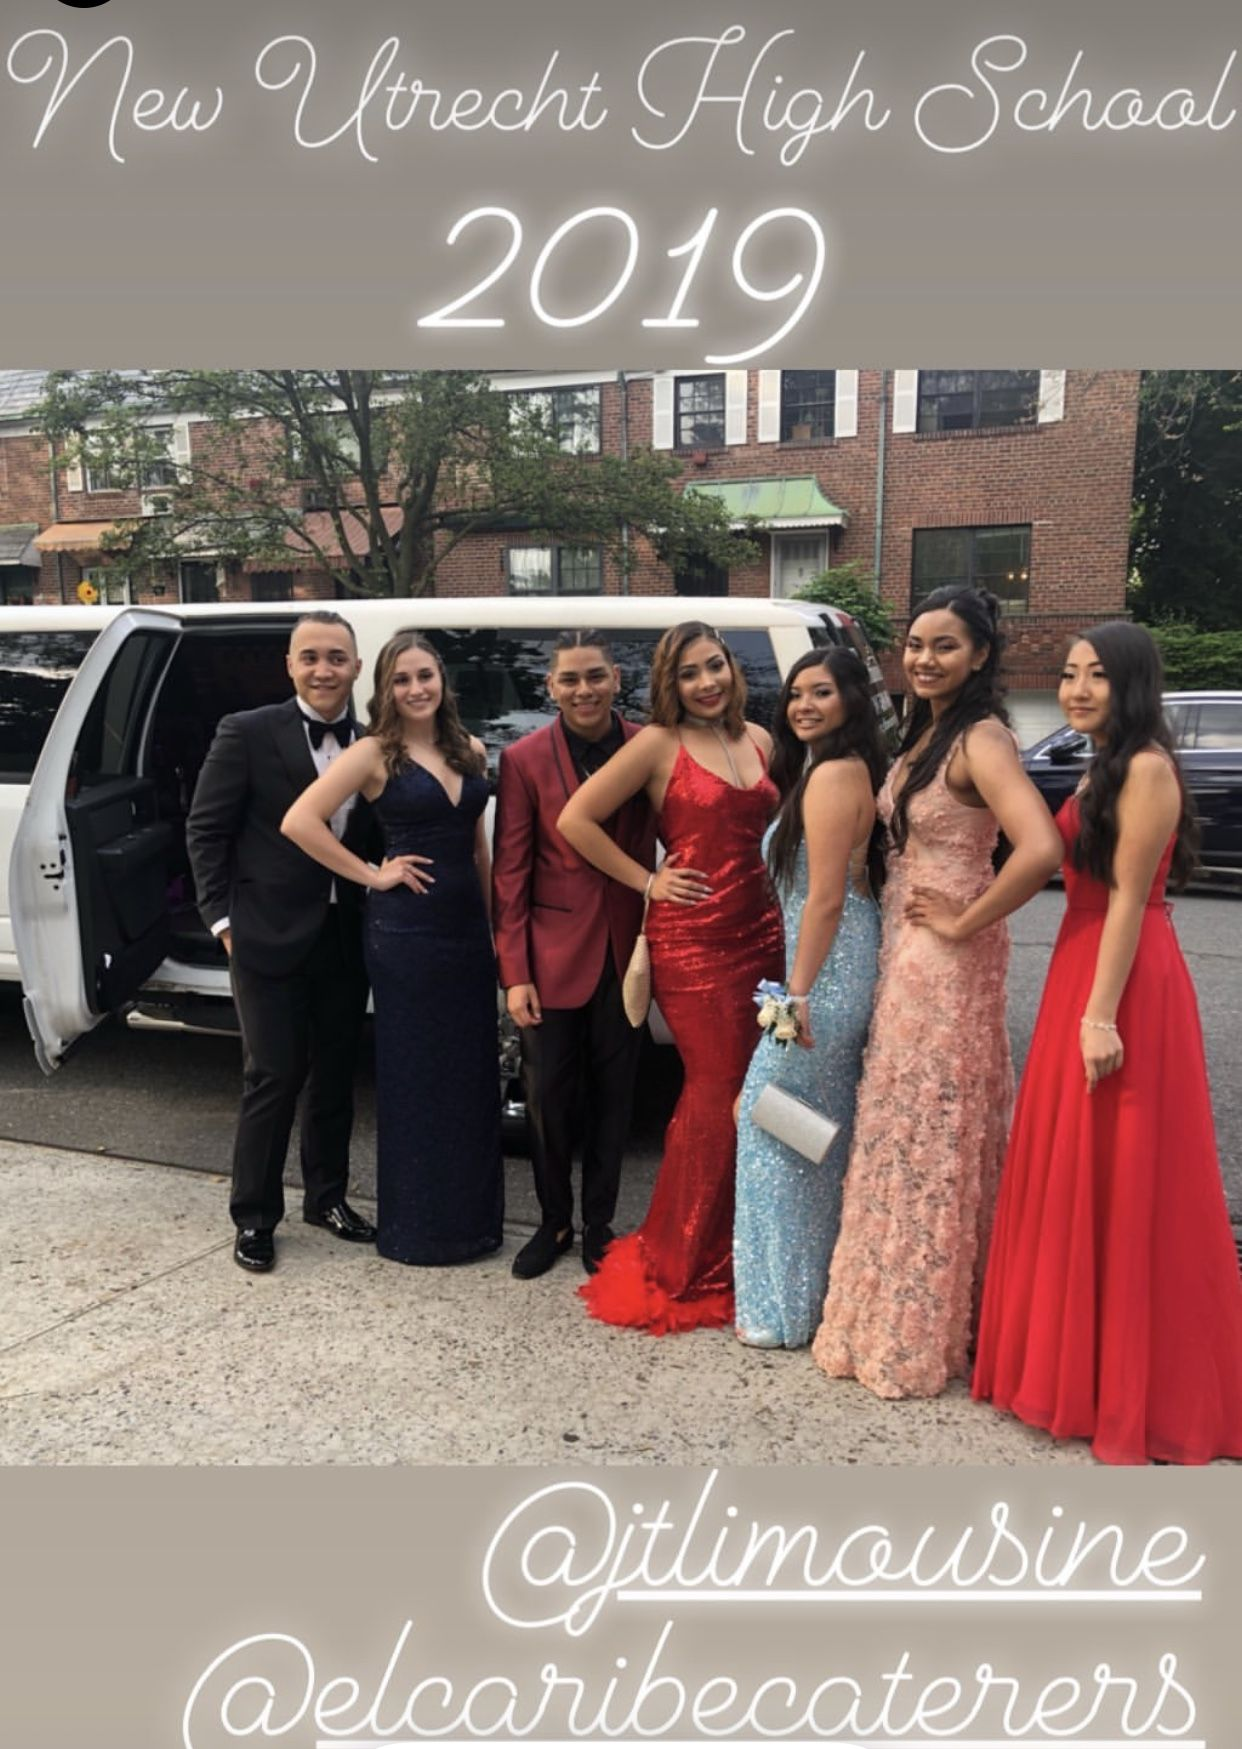 Prom limousine Prom, Bridesmaid dresses, Wedding dresses